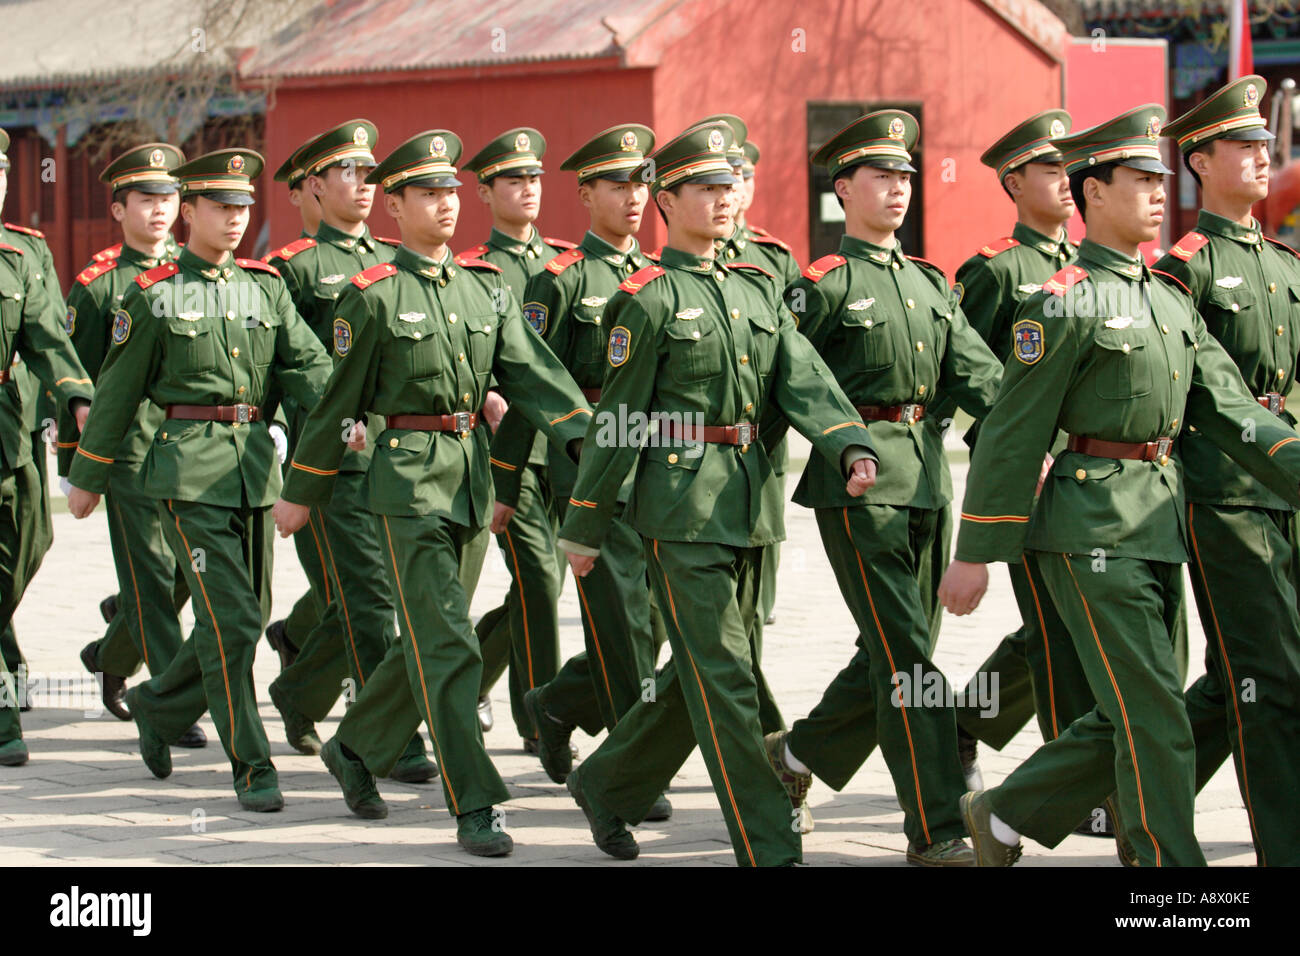 Chinese soldiers on parade in the Forbidden City - Stock Image